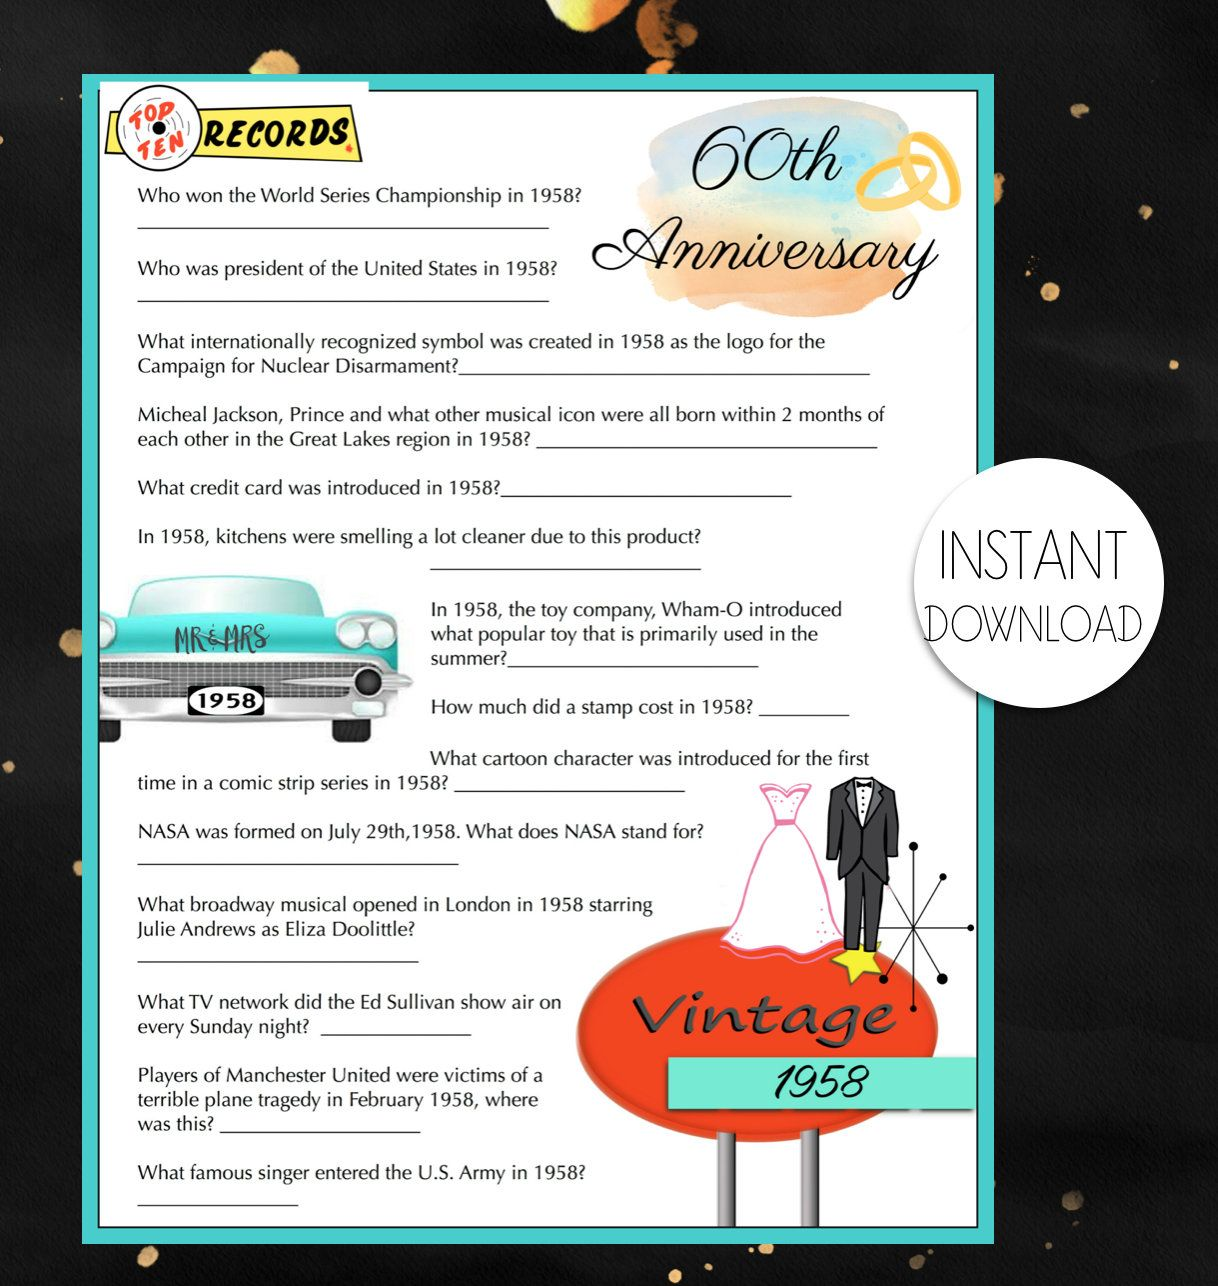 60th Anniversary 1958 Year Anniversary Trivia Game Instant Download Printa 60th Wedding Anniversary Party 60th Anniversary Parties Anniversary Party Games